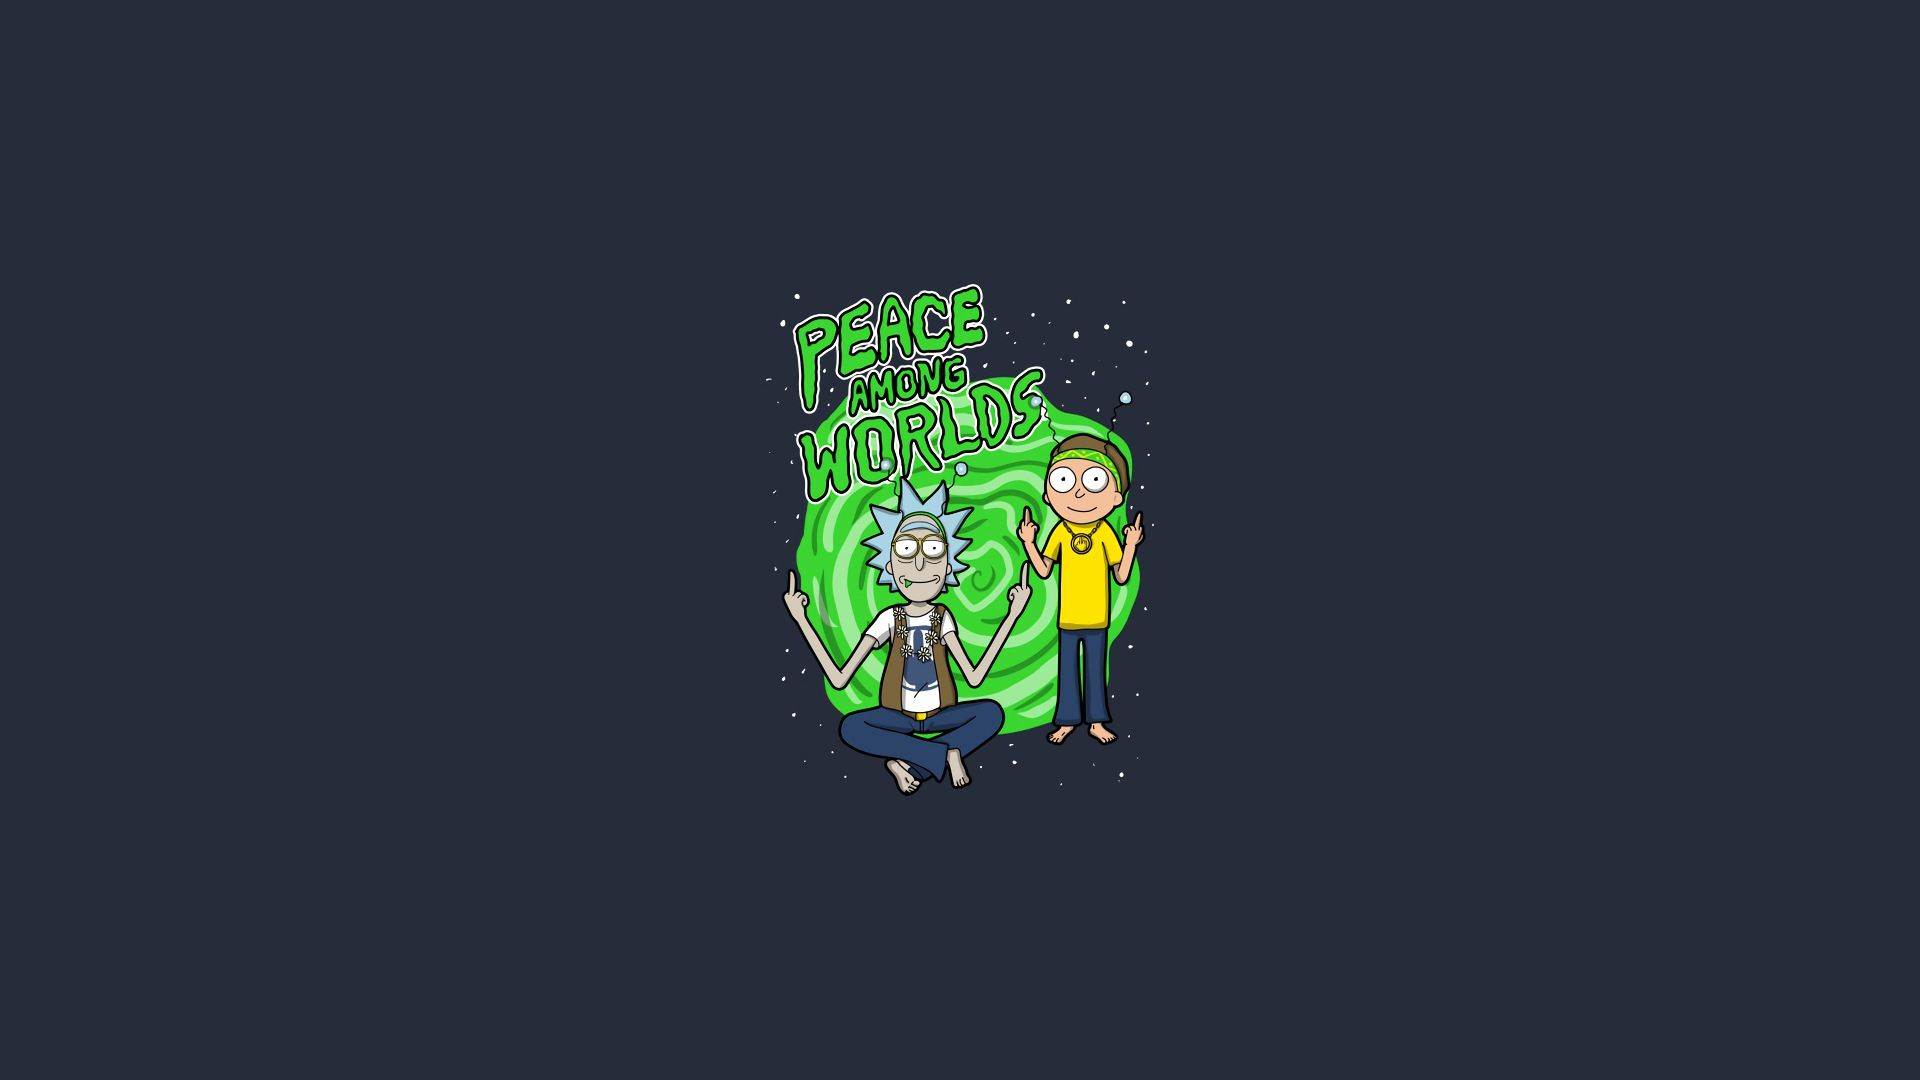 rick and morty android wallpaper, rick and morty background art